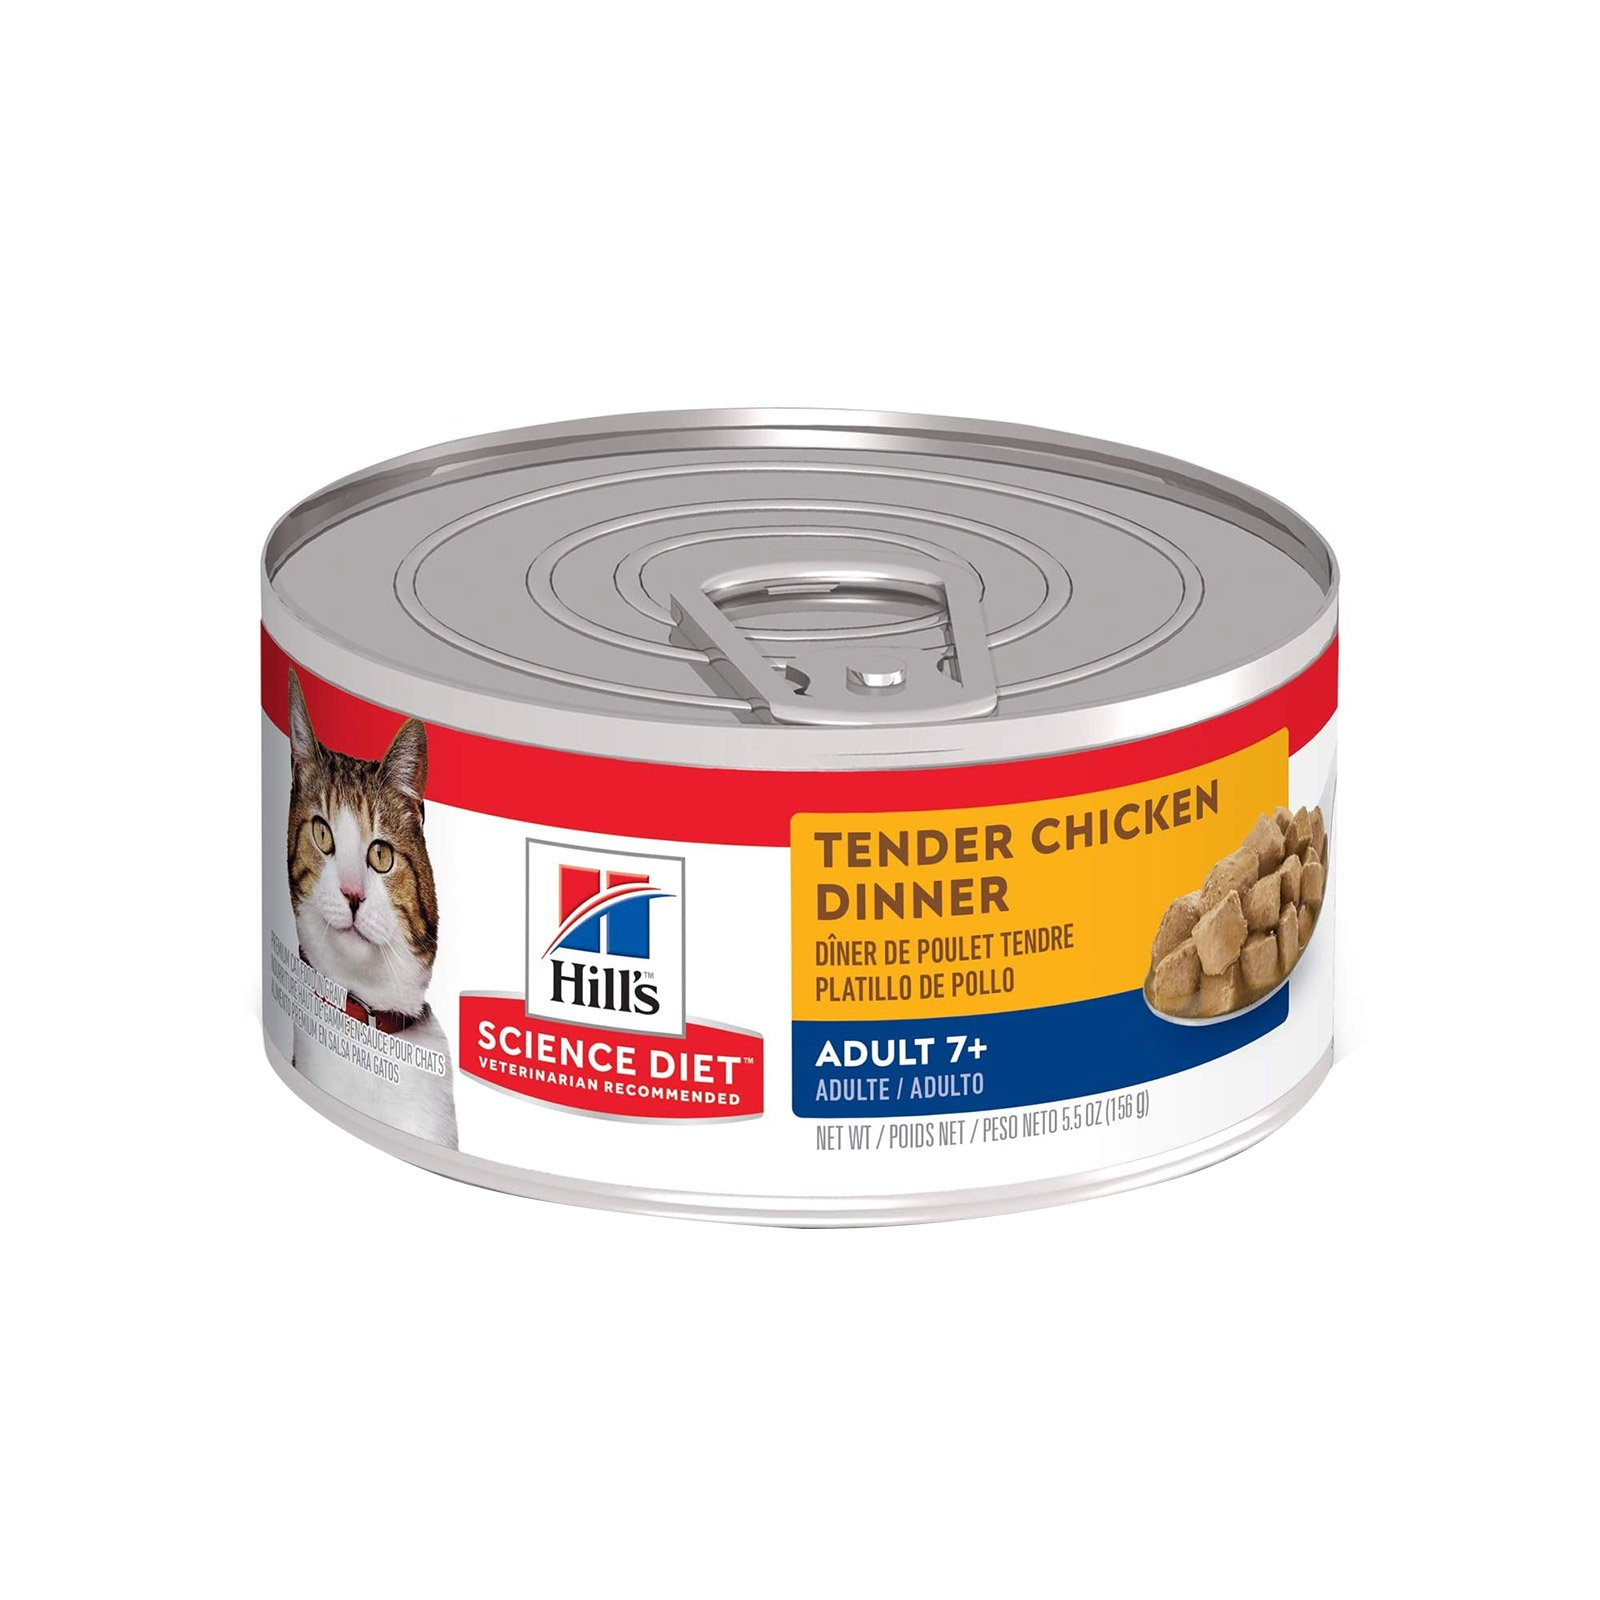 Hill's Science Diet Adult 7+ Tender Chicken Dinner Senior Canned Wet Cat Food